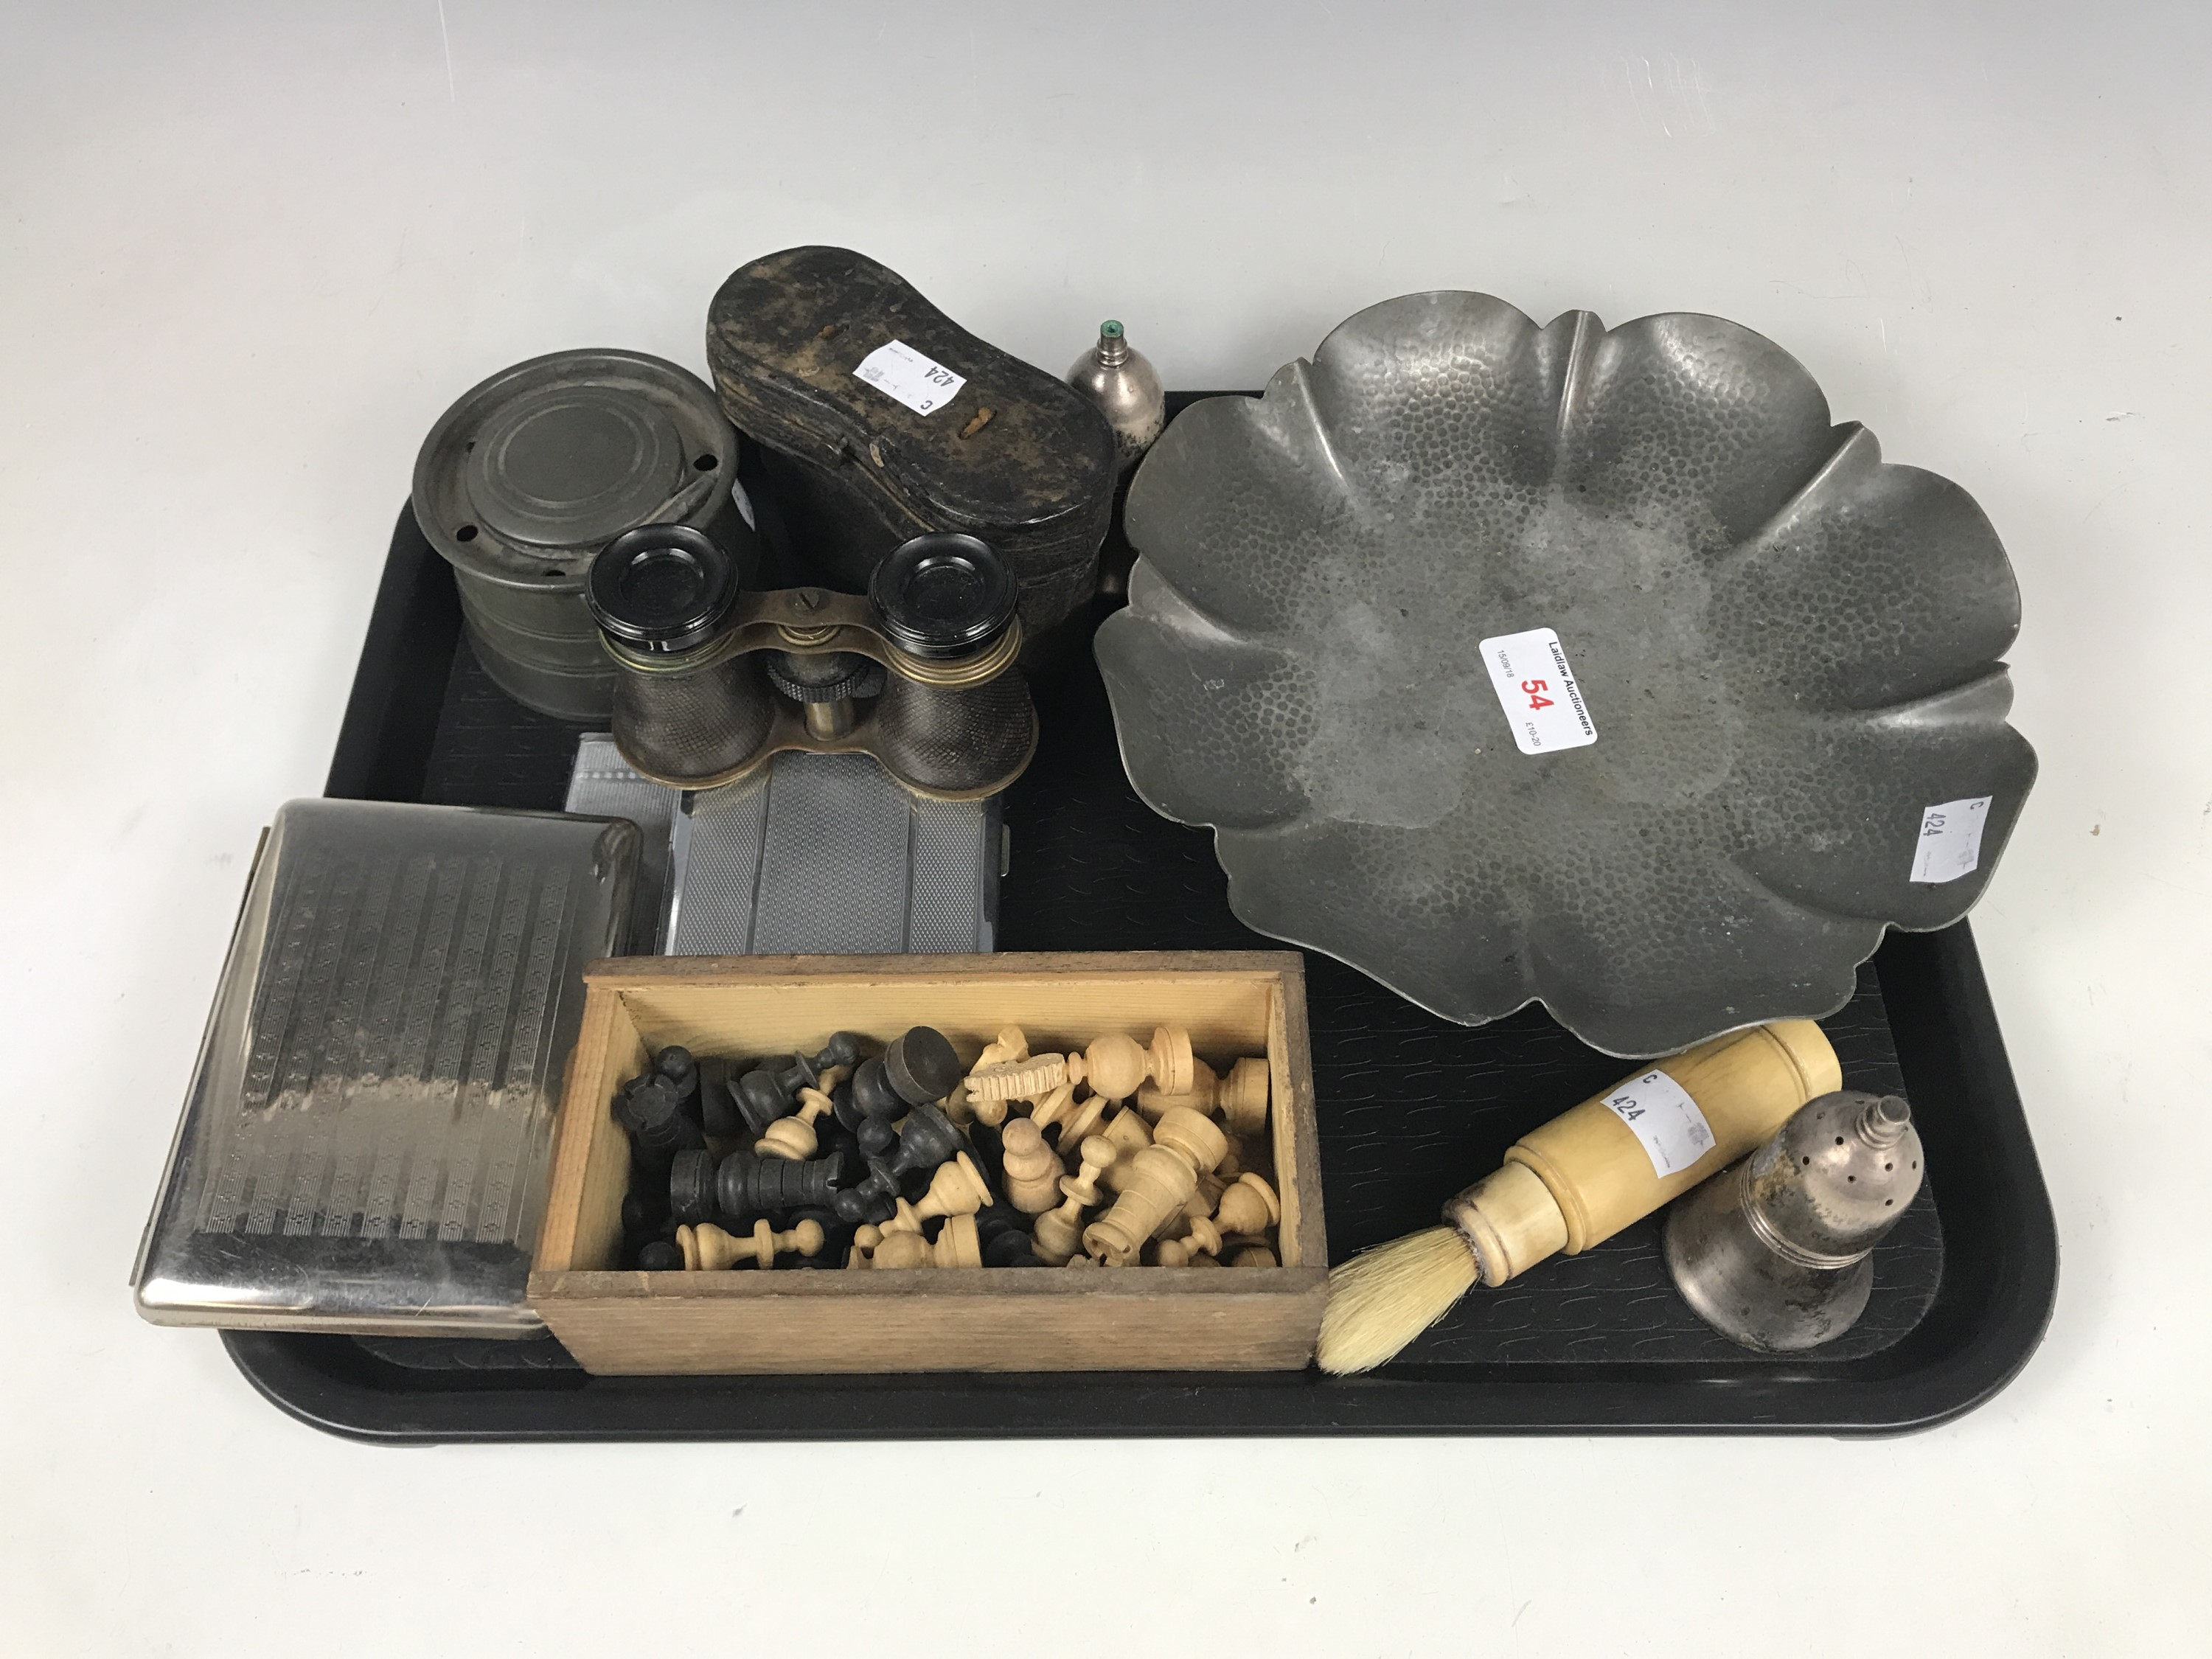 Lot 54 - Sundry collectors' items including two electroplate cigarette holders, a cigar holder, a pewter dish